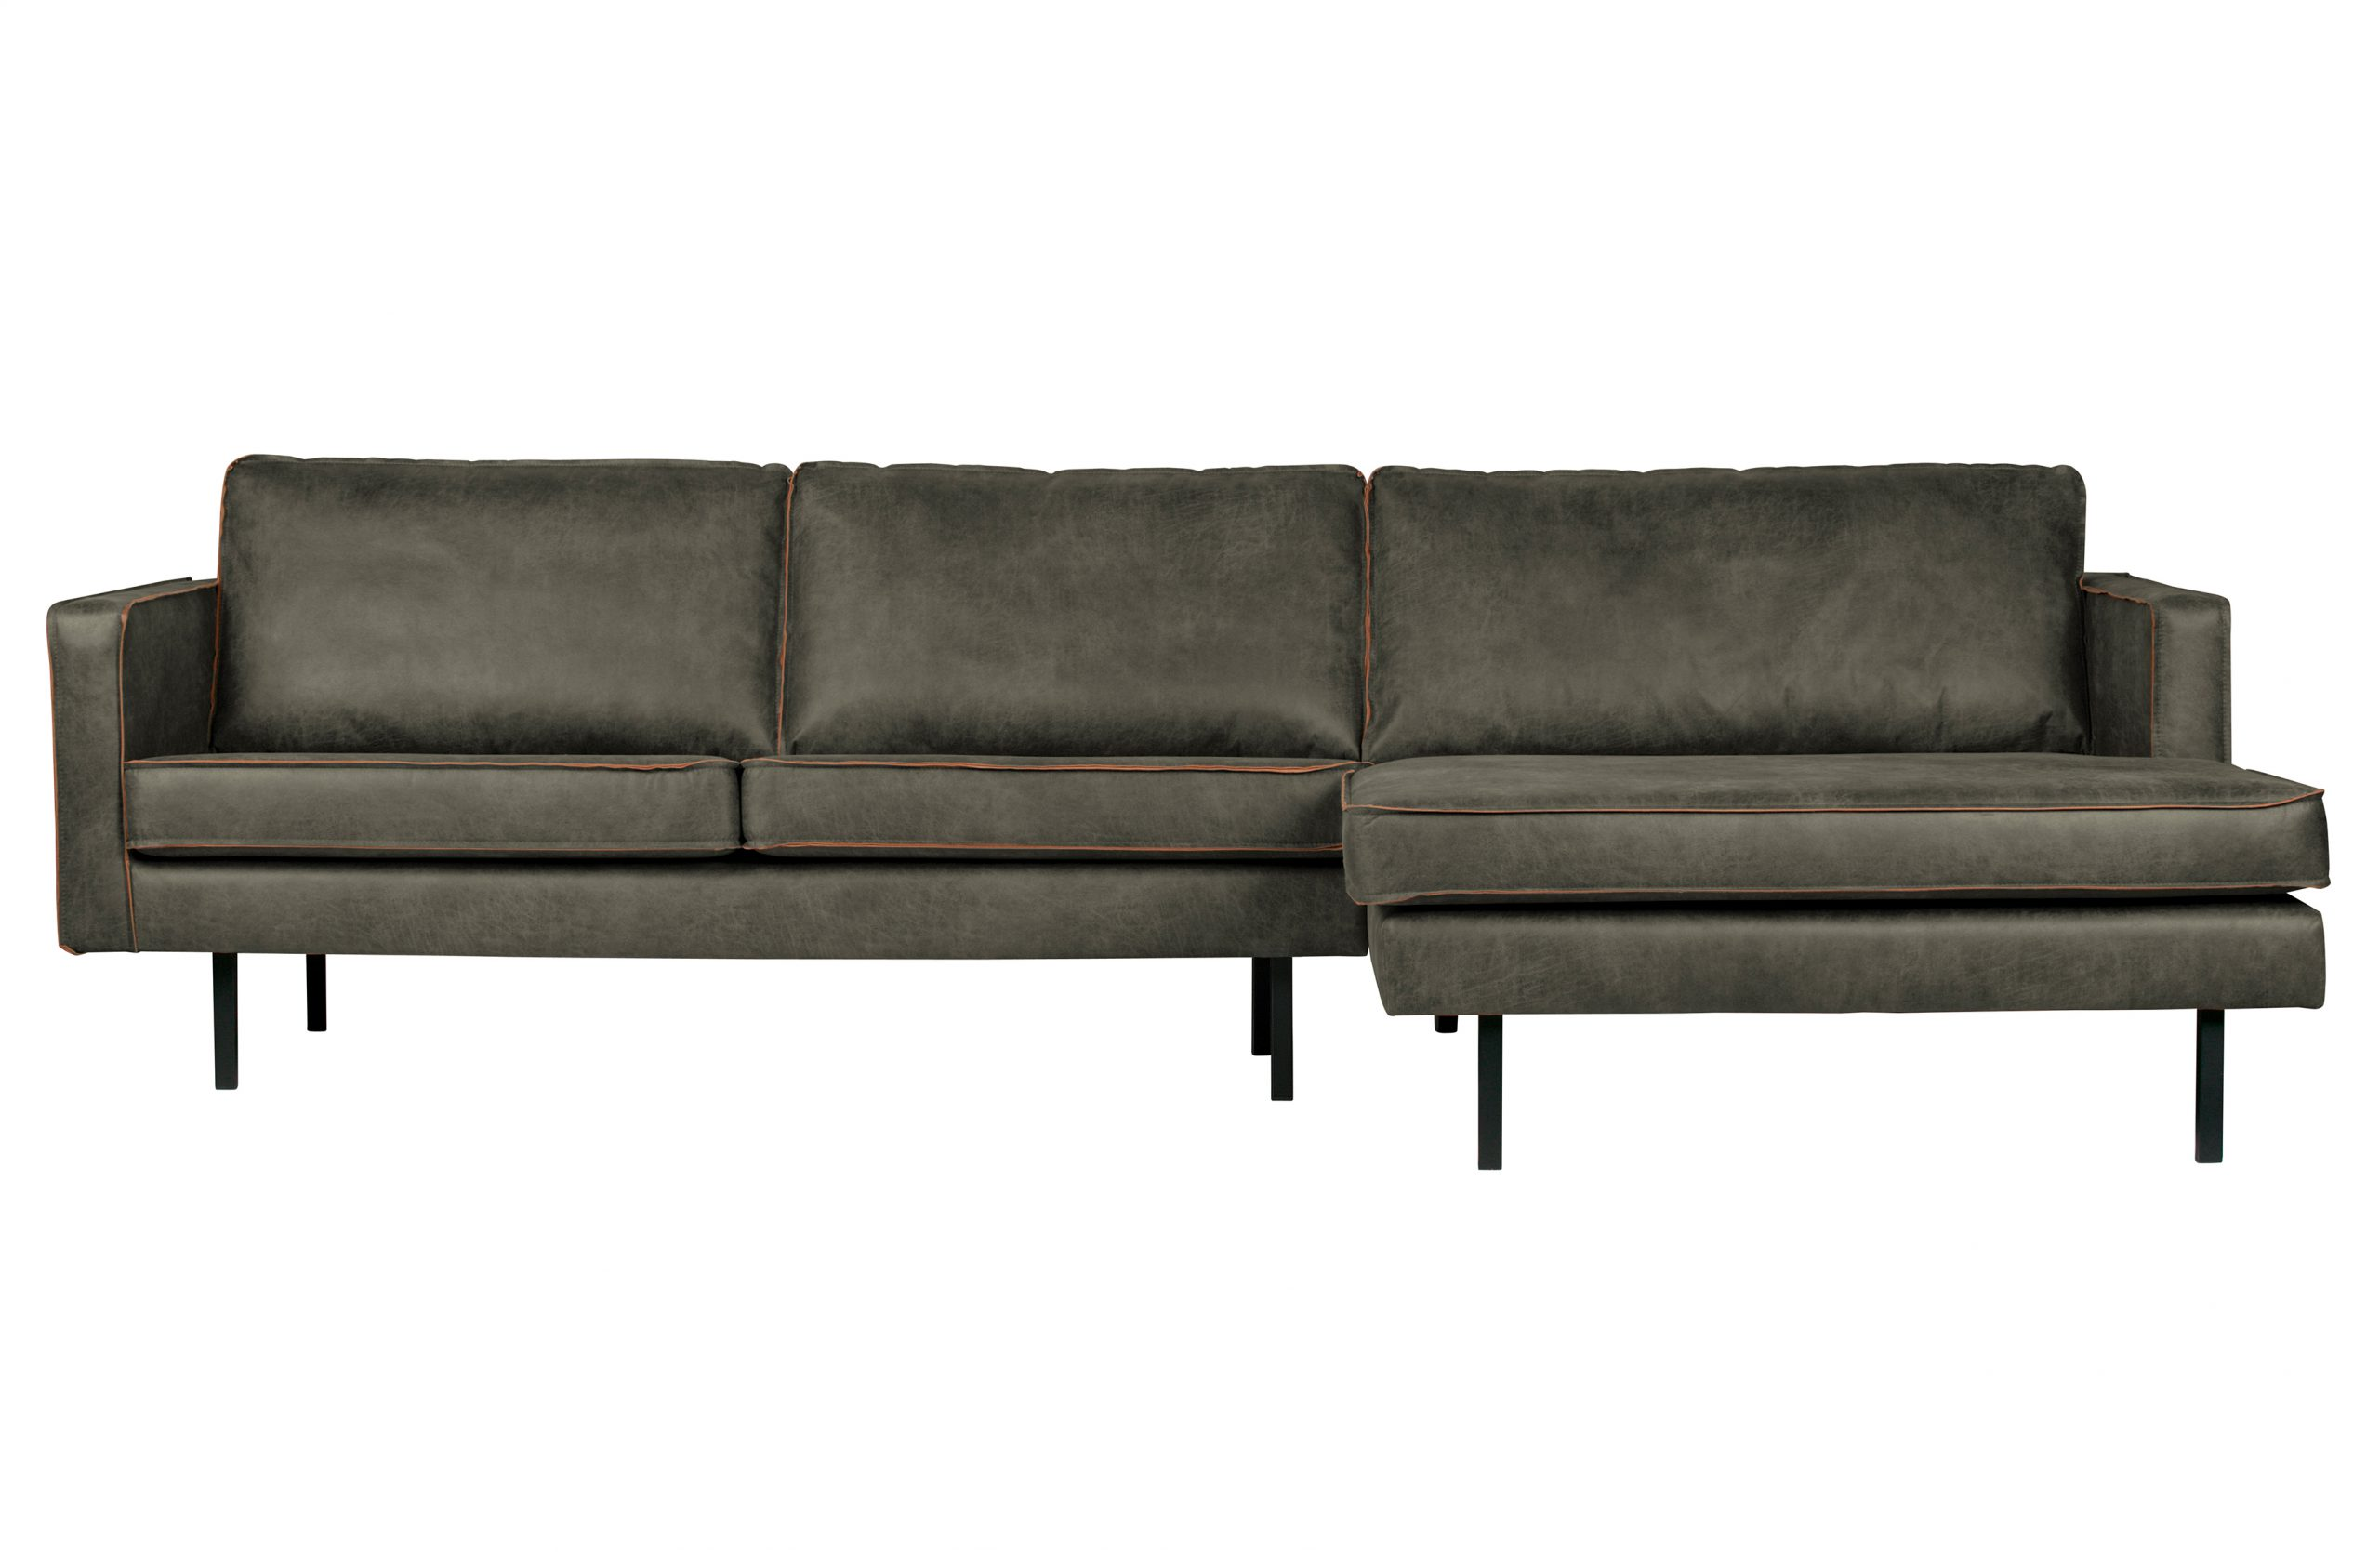 Rodeo Chaise Longue Rechts - Army